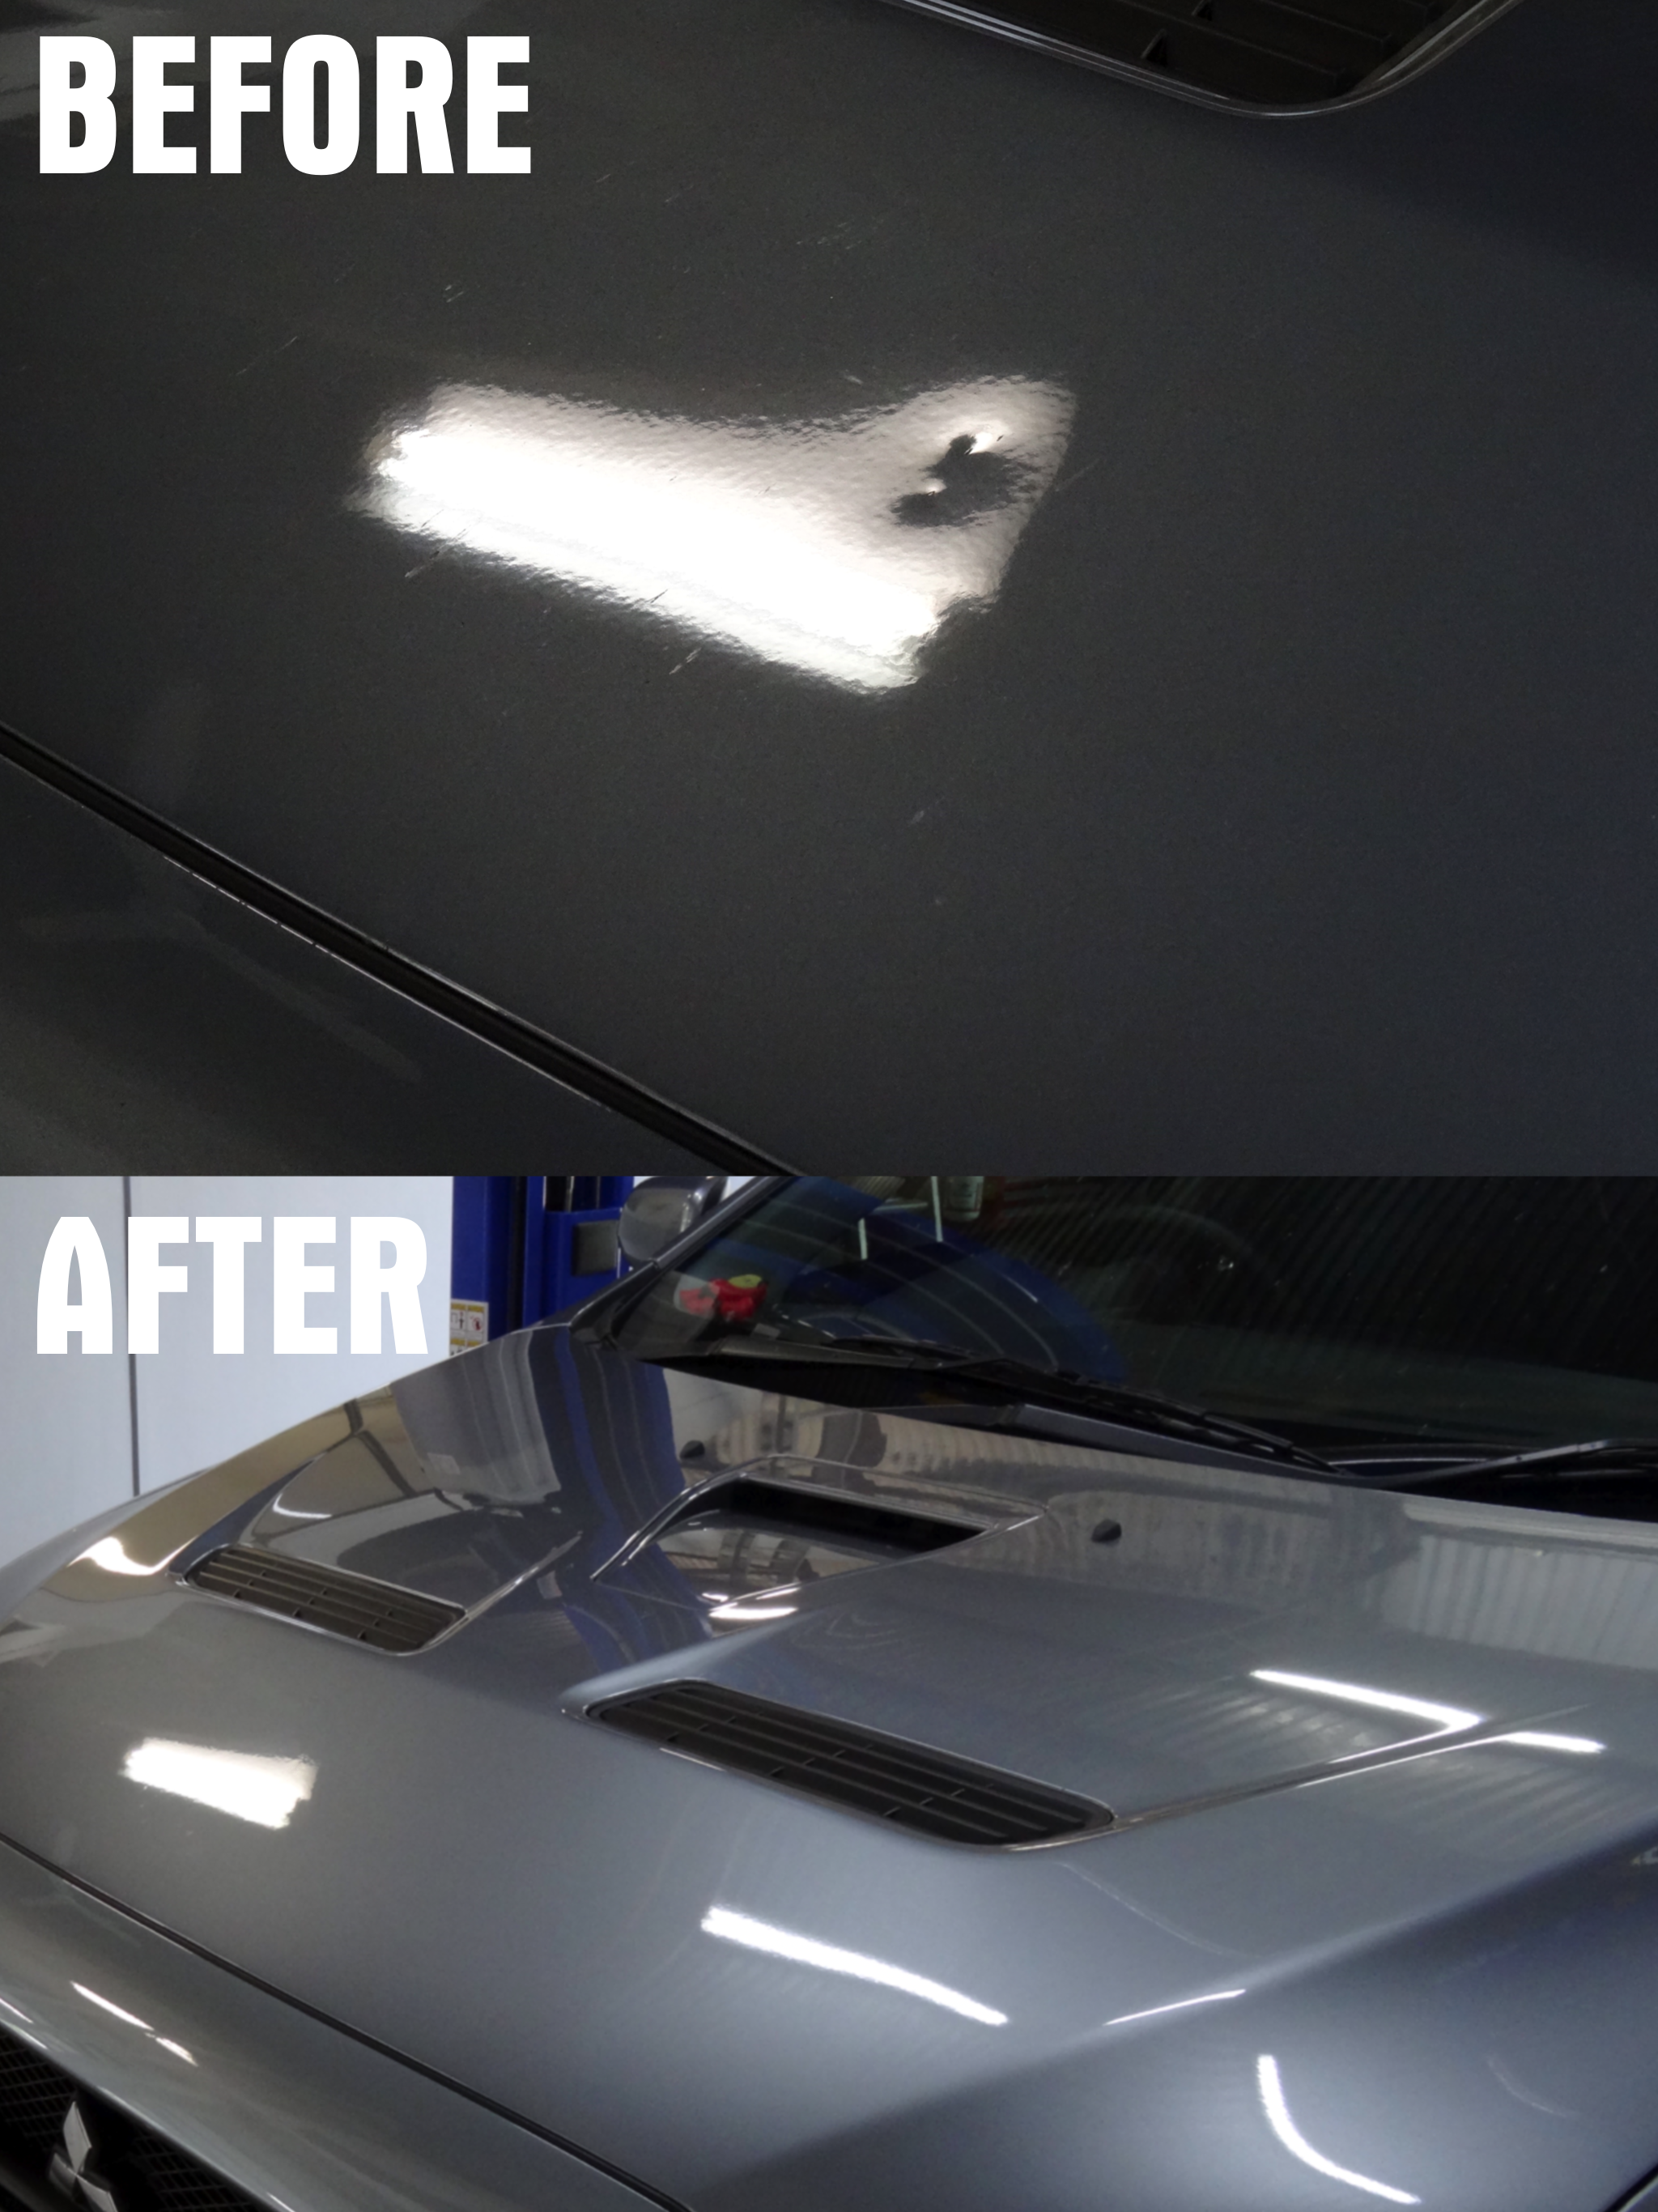 Paintless dent repair paintless dent removal dent removal cooroy Queensland Noosa car restoration ford falcon classic car vintage car XR xt xw xy xa xb xc final detail final assembly touch ups parking dents shopping trolley dents  Paintless dent repair before and after